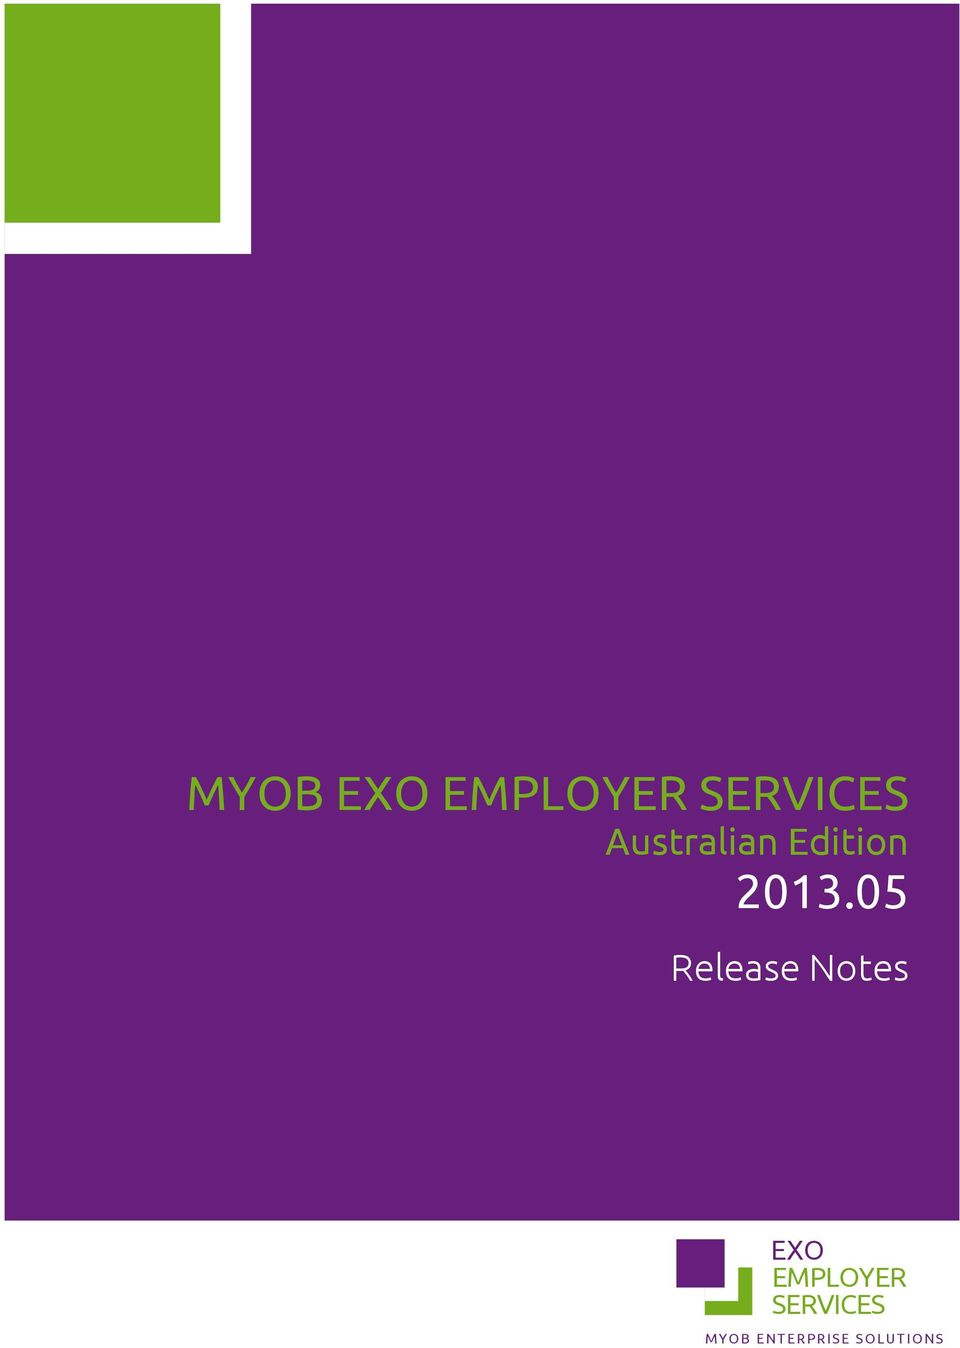 05 Release Notes EXO EMPLOYER